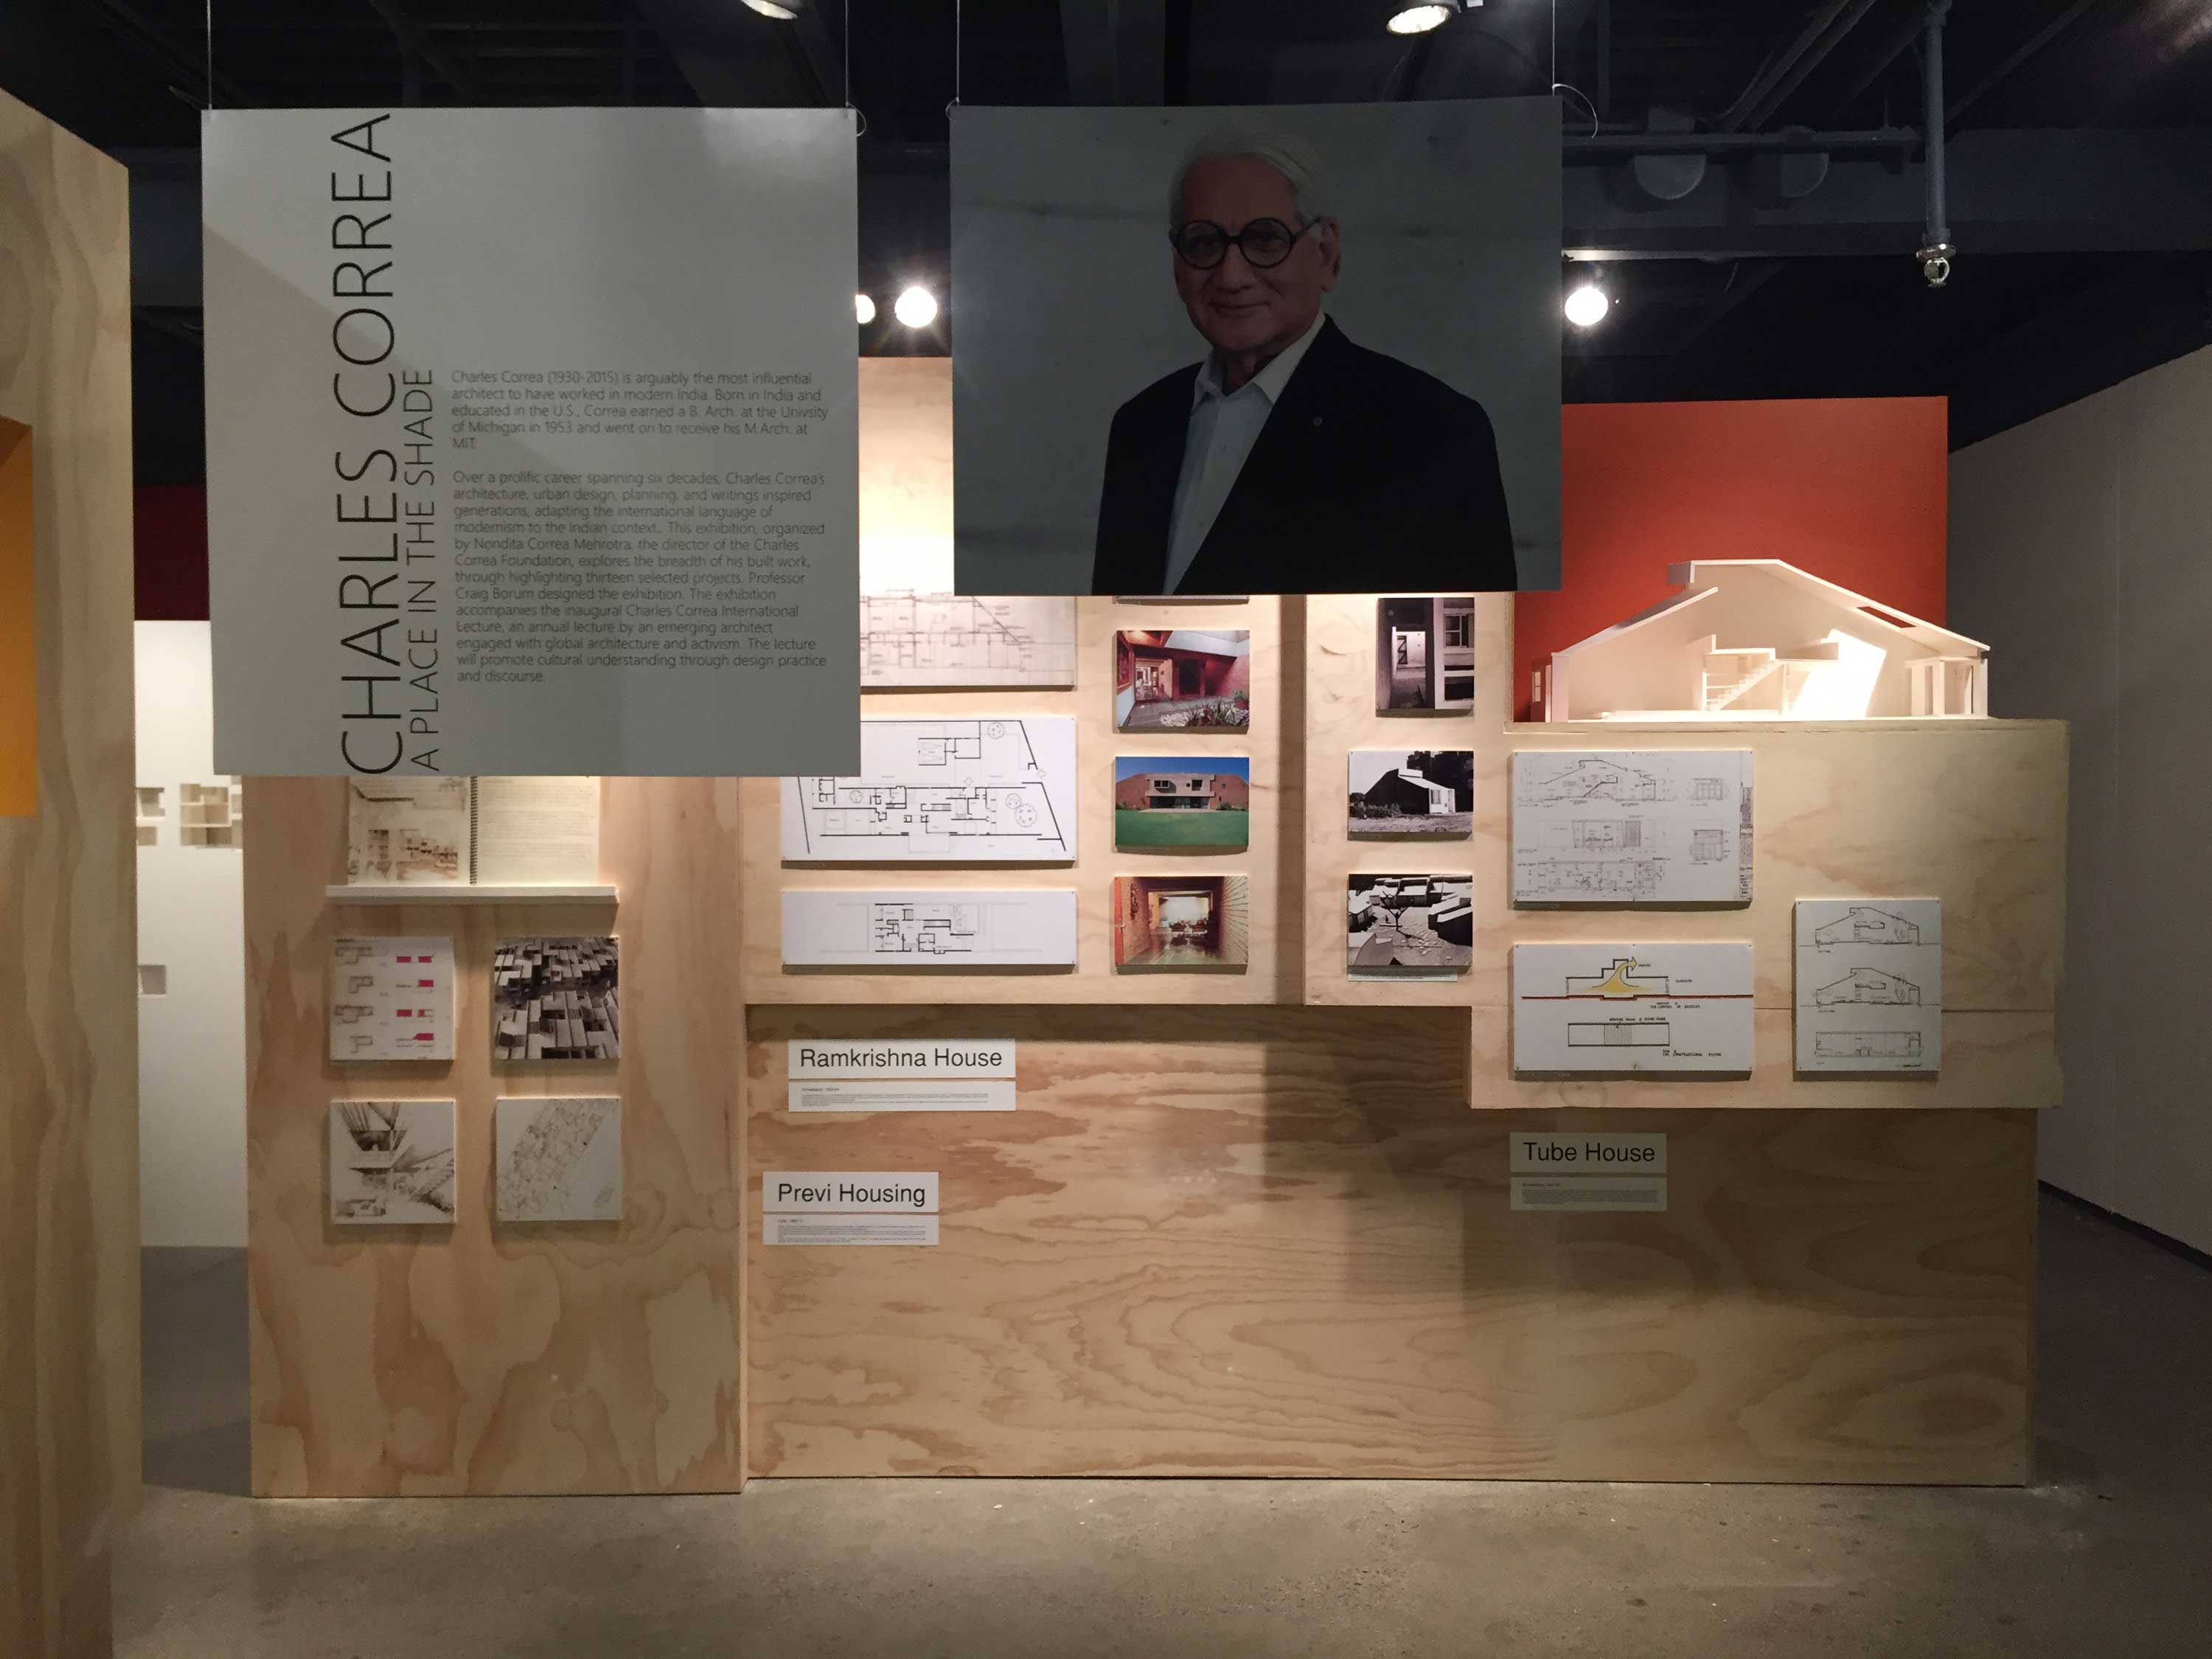 """A Place in the Shade: Selected Projects by Charles Correa"""" is  exhibition featuring 13 projects from six decades of work. It runs at the Taubman College  Gallery runs through Sept. 22. Image credit: Run Yu"""